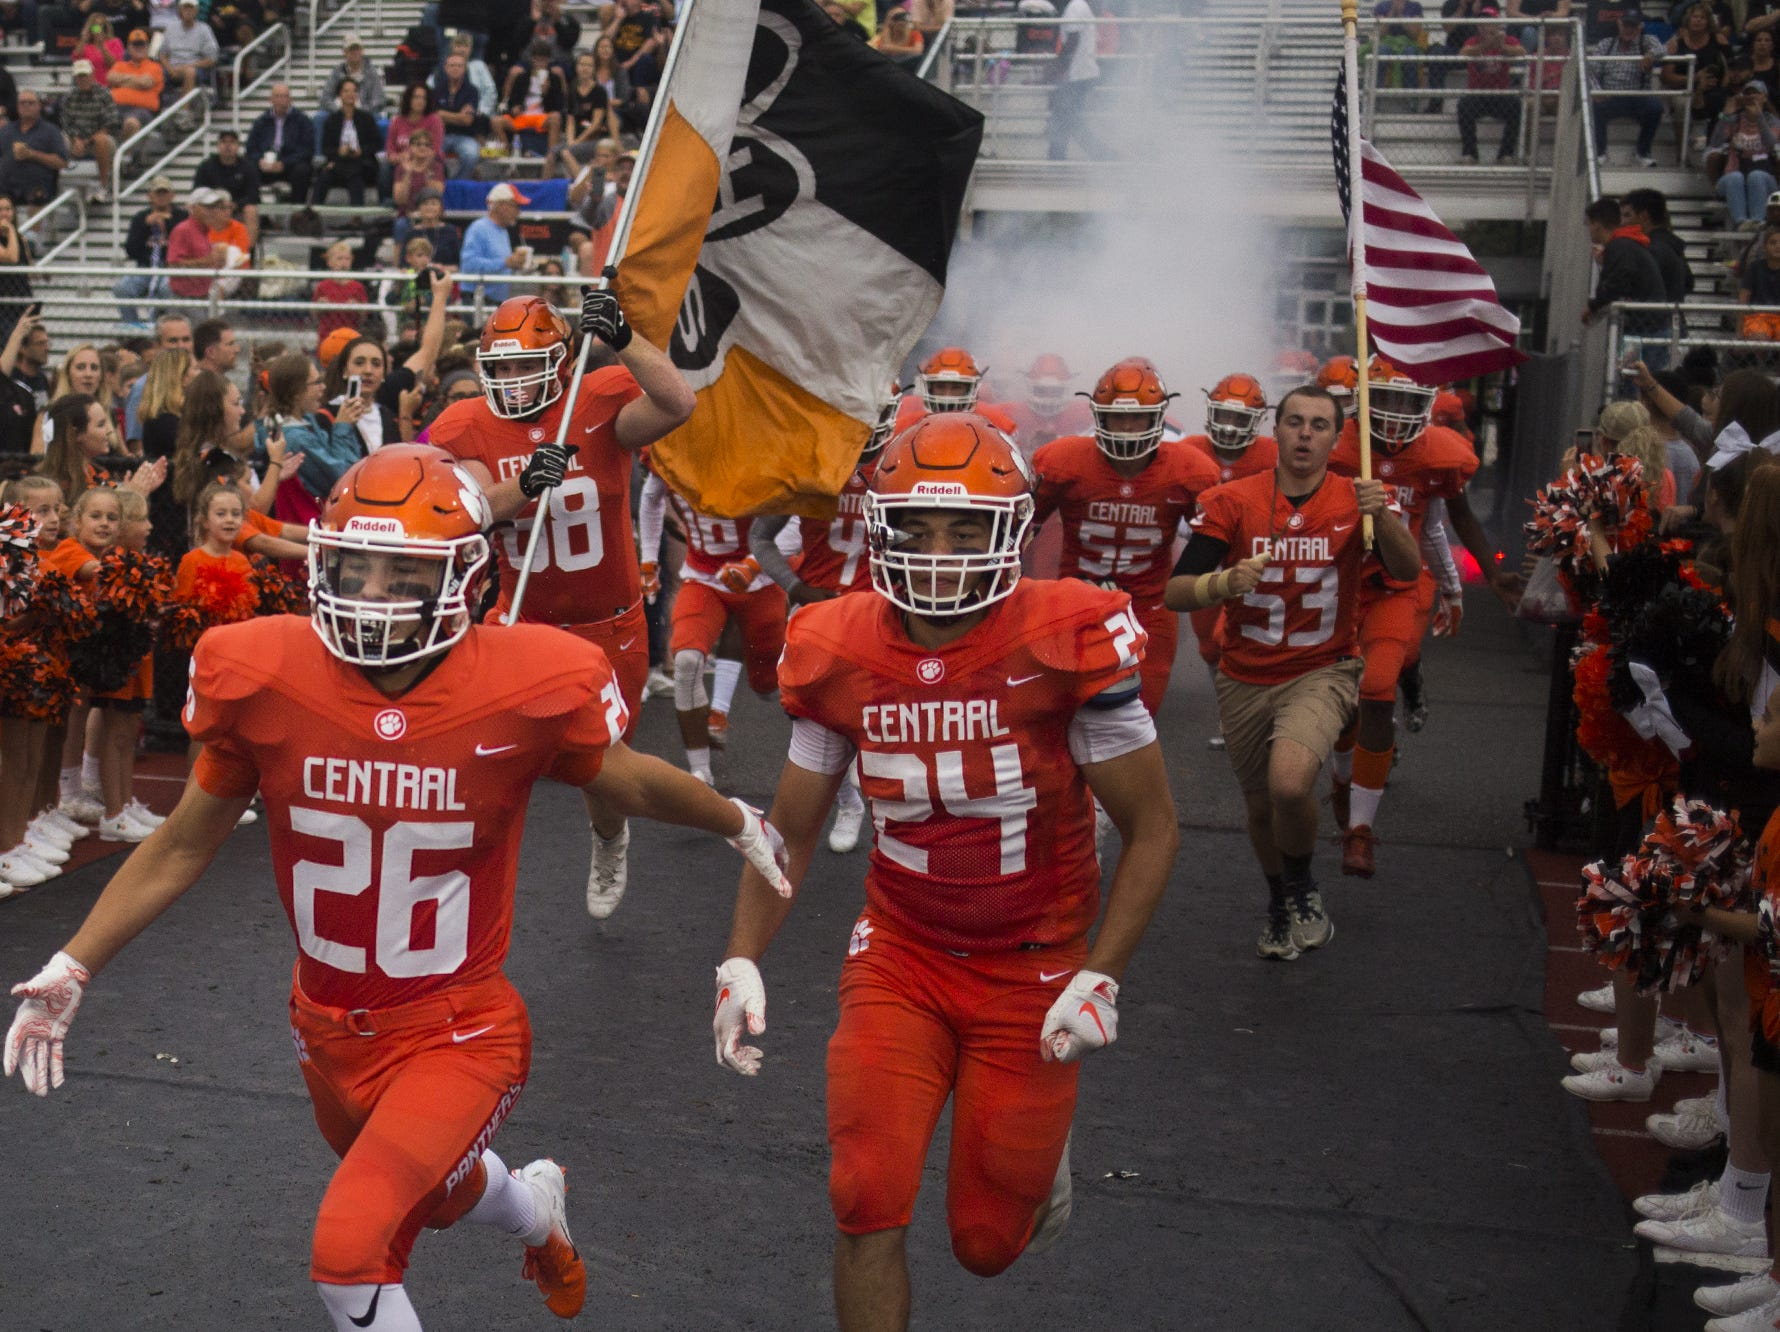 Central York takes the field. Central York defeats Cumberland Valley 31-14 in football at Central York High School in Springettsbury Township, Friday, August 31, 2018.